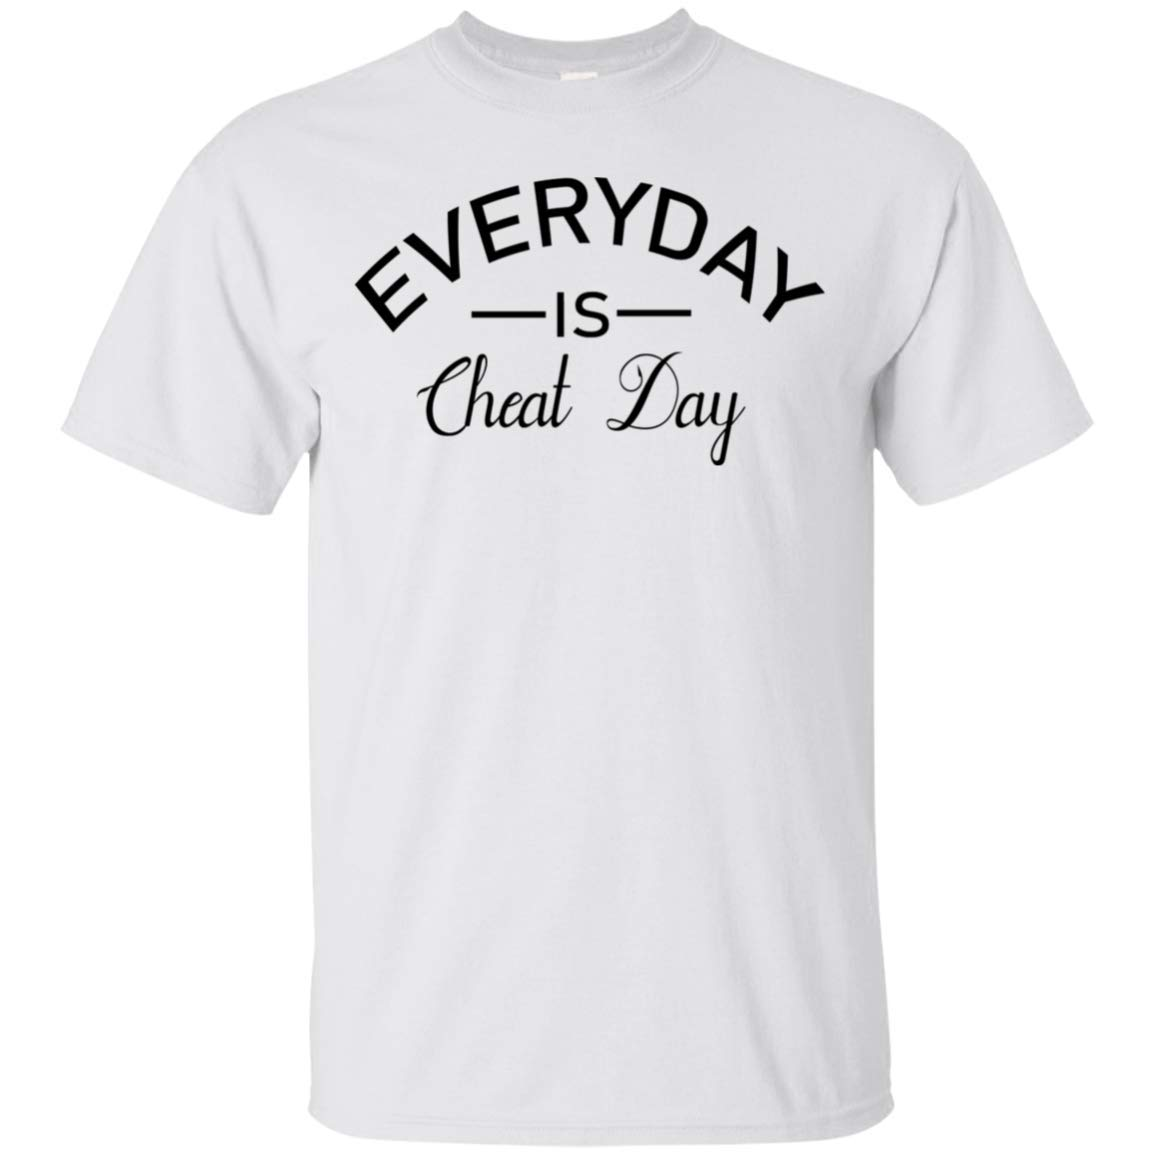 Molomon Everyday Is Cheat Day Yoga Healthy Tshirt Unisex Birthday Gifts S5